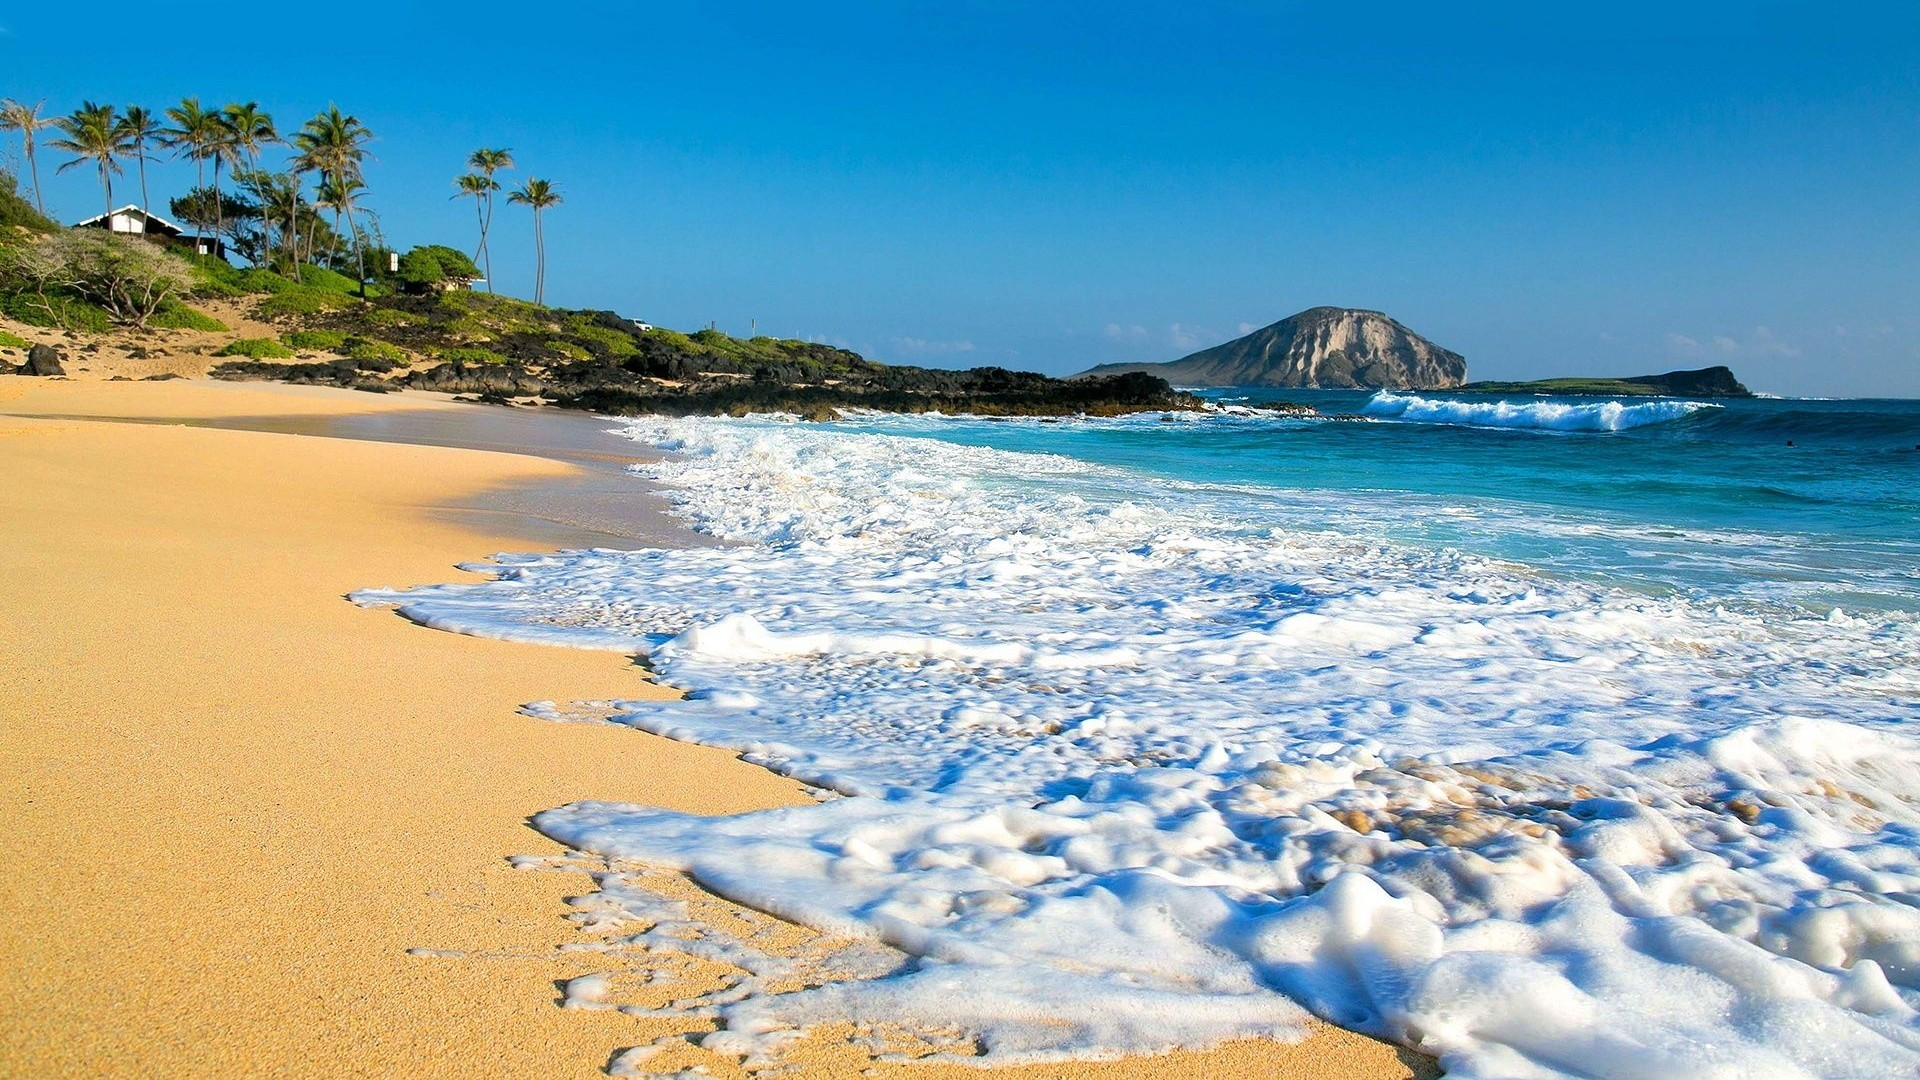 Hawaii Wallpaper Android Apps on Google Play